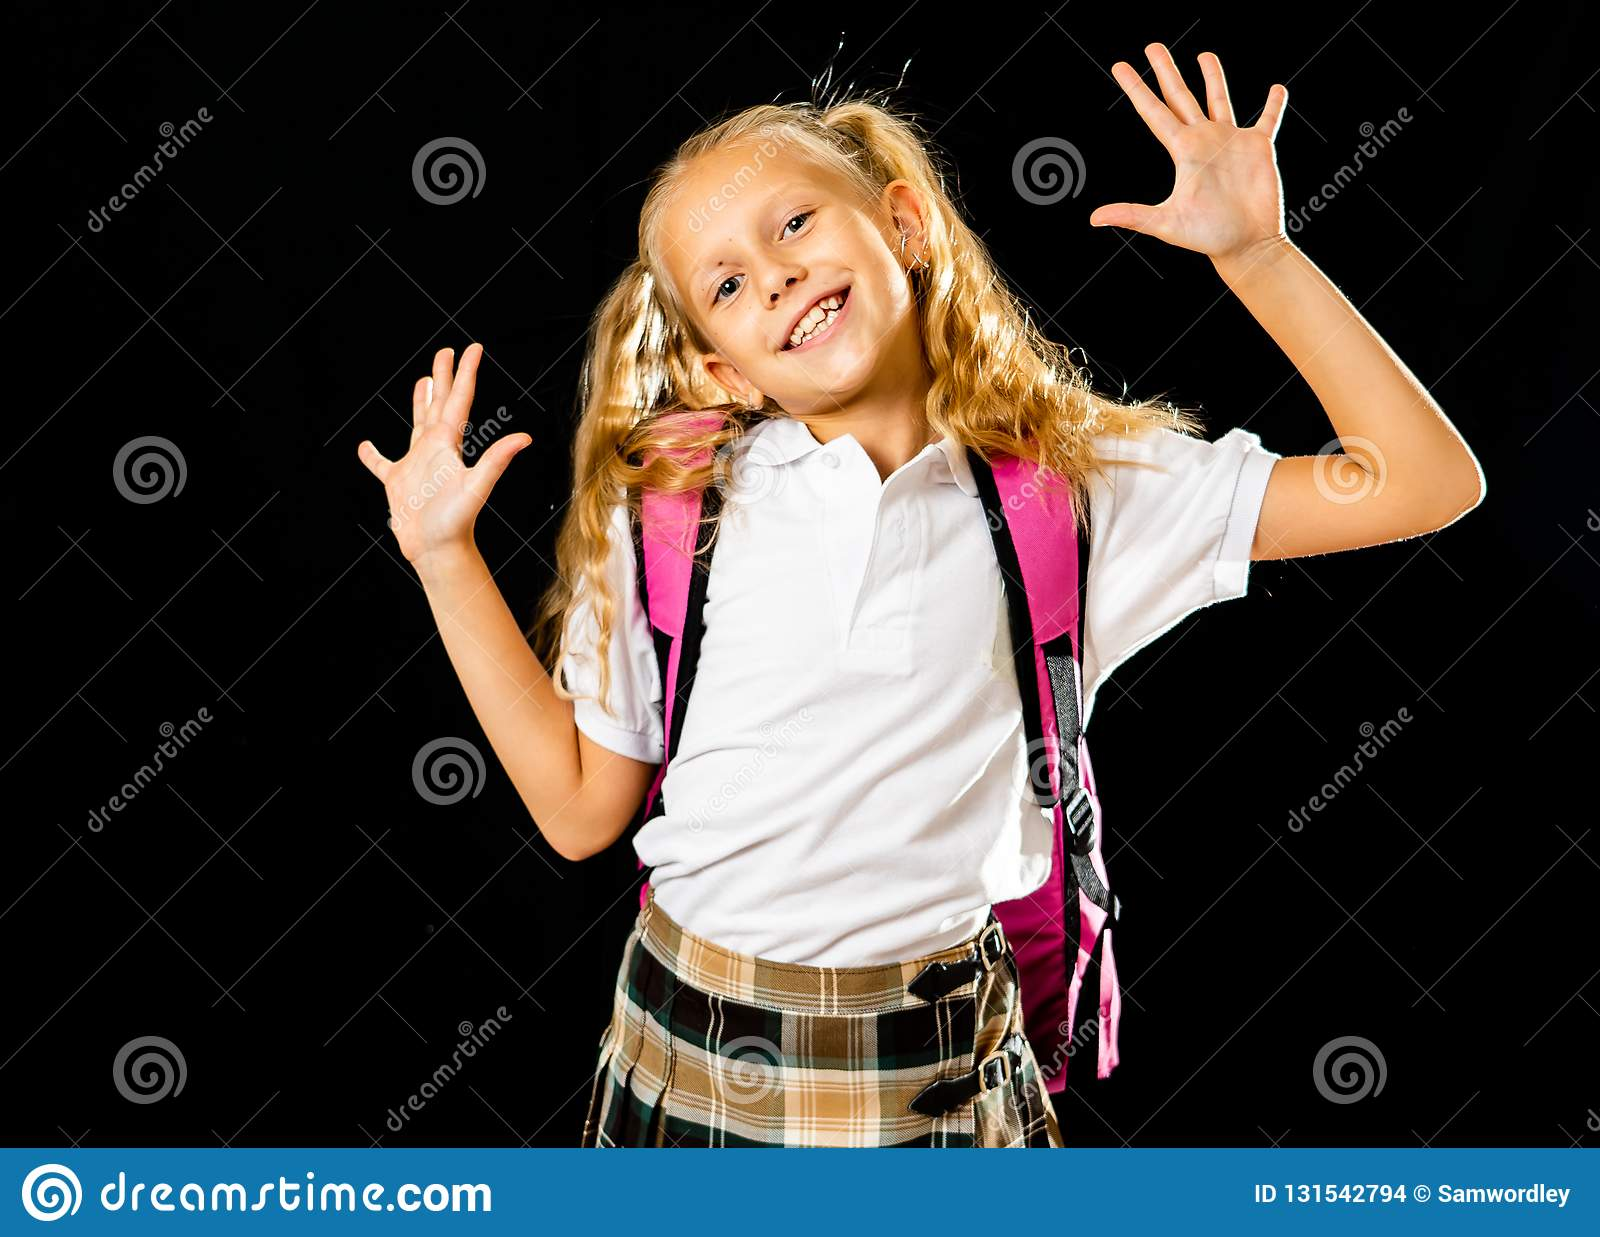 Adorable beautiful little schoolgirl with big pink schoolbag feeling excited and happy isolated on a black background in back to